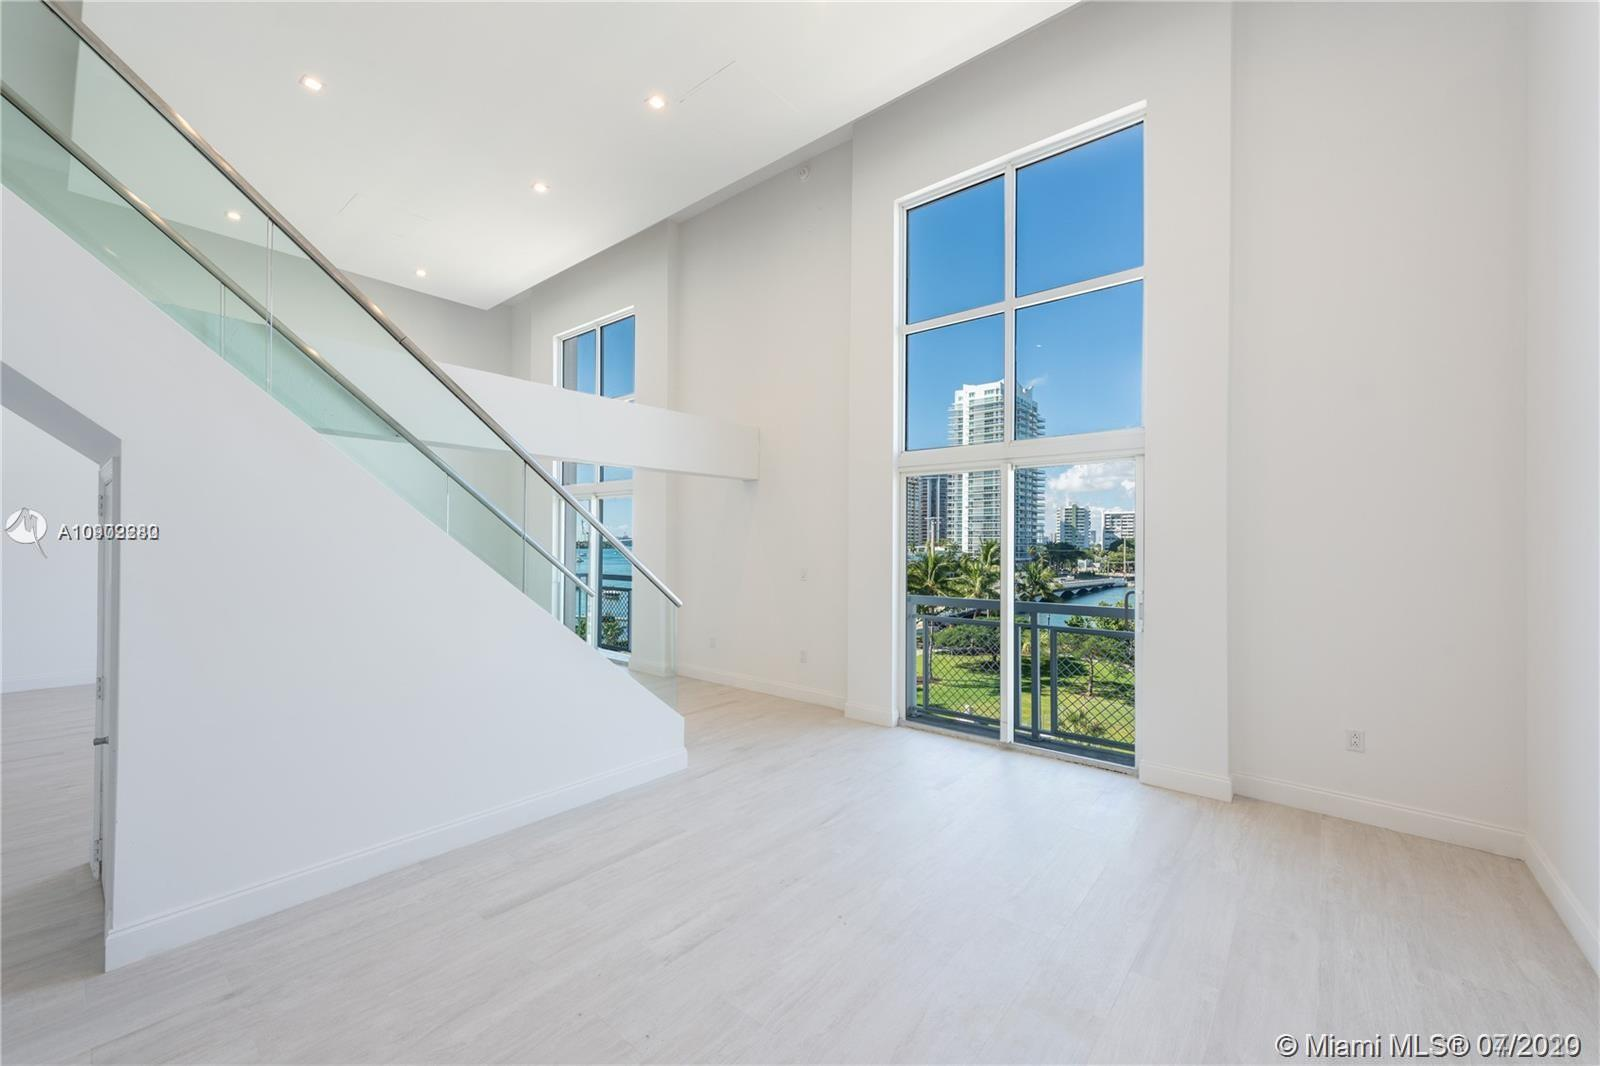 THE LOFTS AT SOUTH BEACH UNIT L502 PHOTO